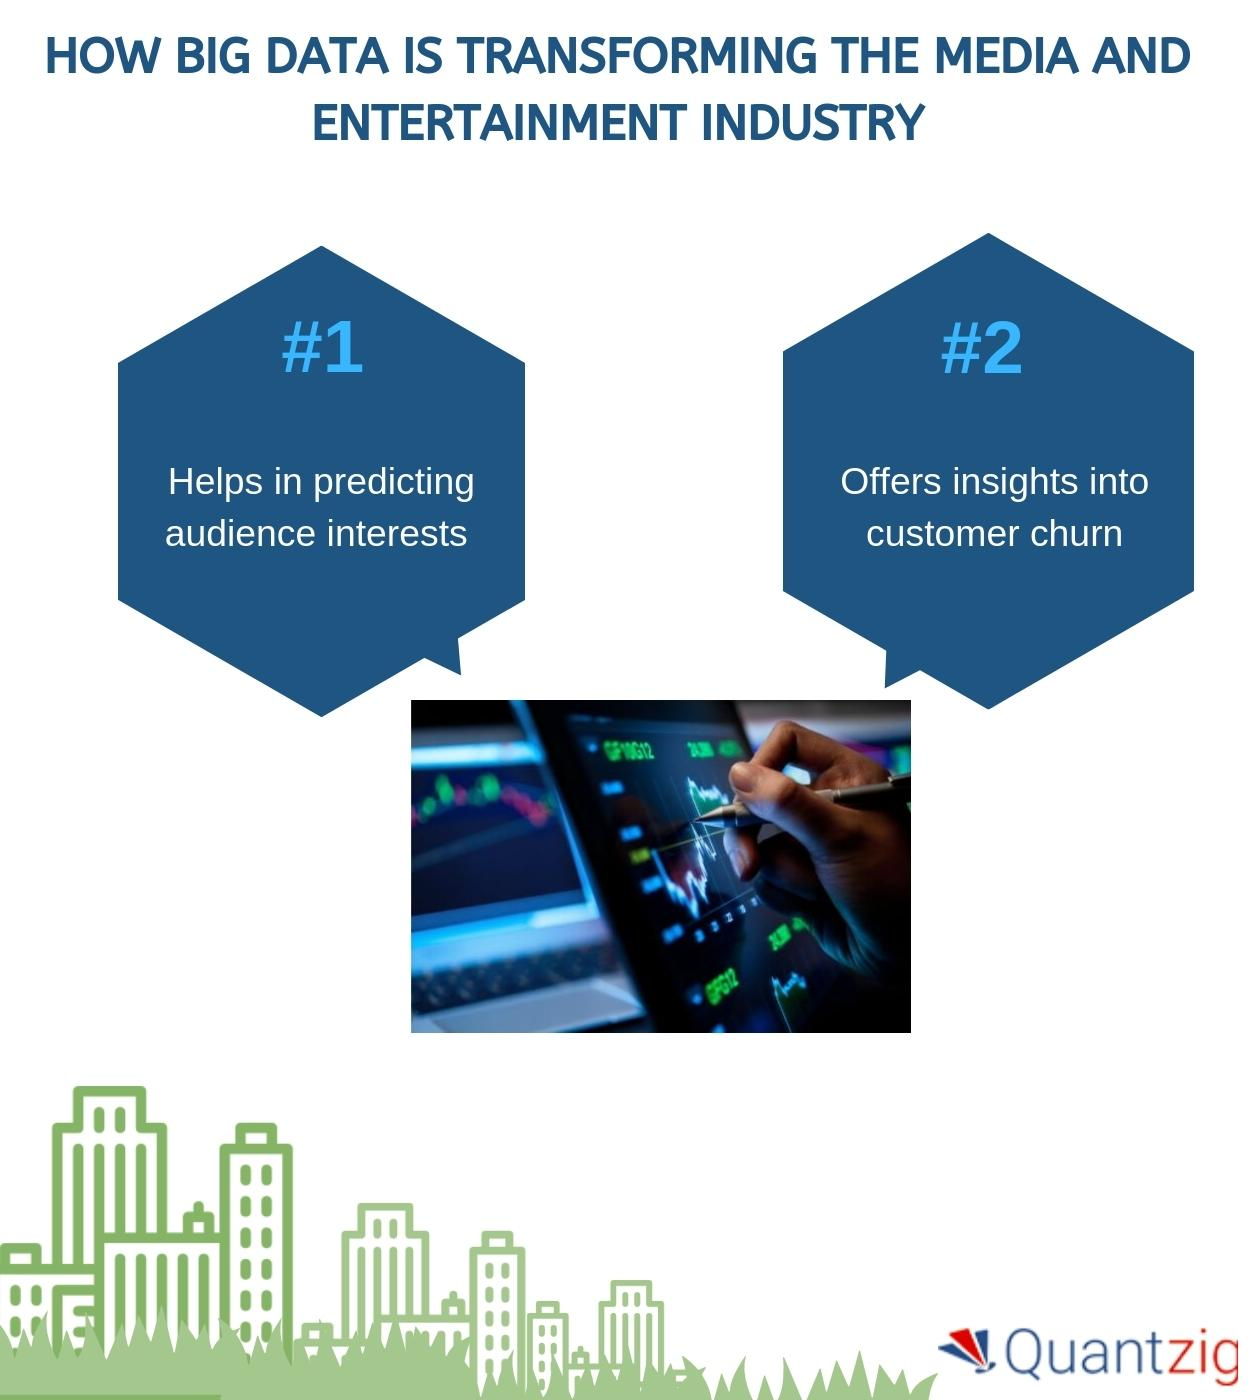 How is Big Data Analytics Transforming the Media and Entertainment Landscape? | Quantzig's New Article Offers Detailed Insights